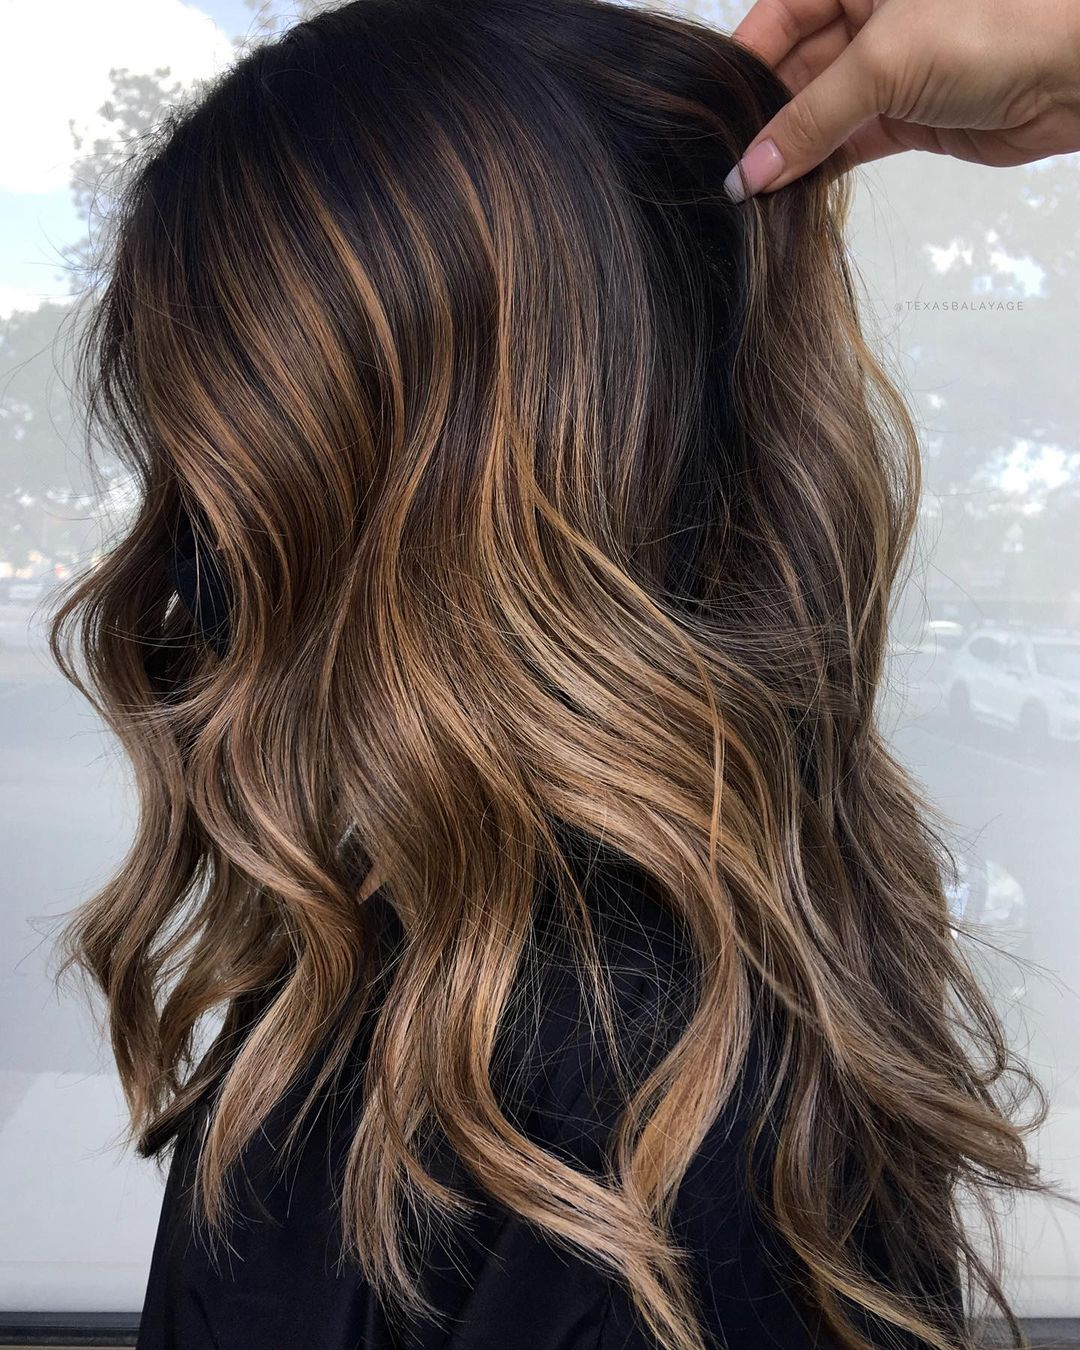 Subtle Caramel Highlights for Brunette Hair